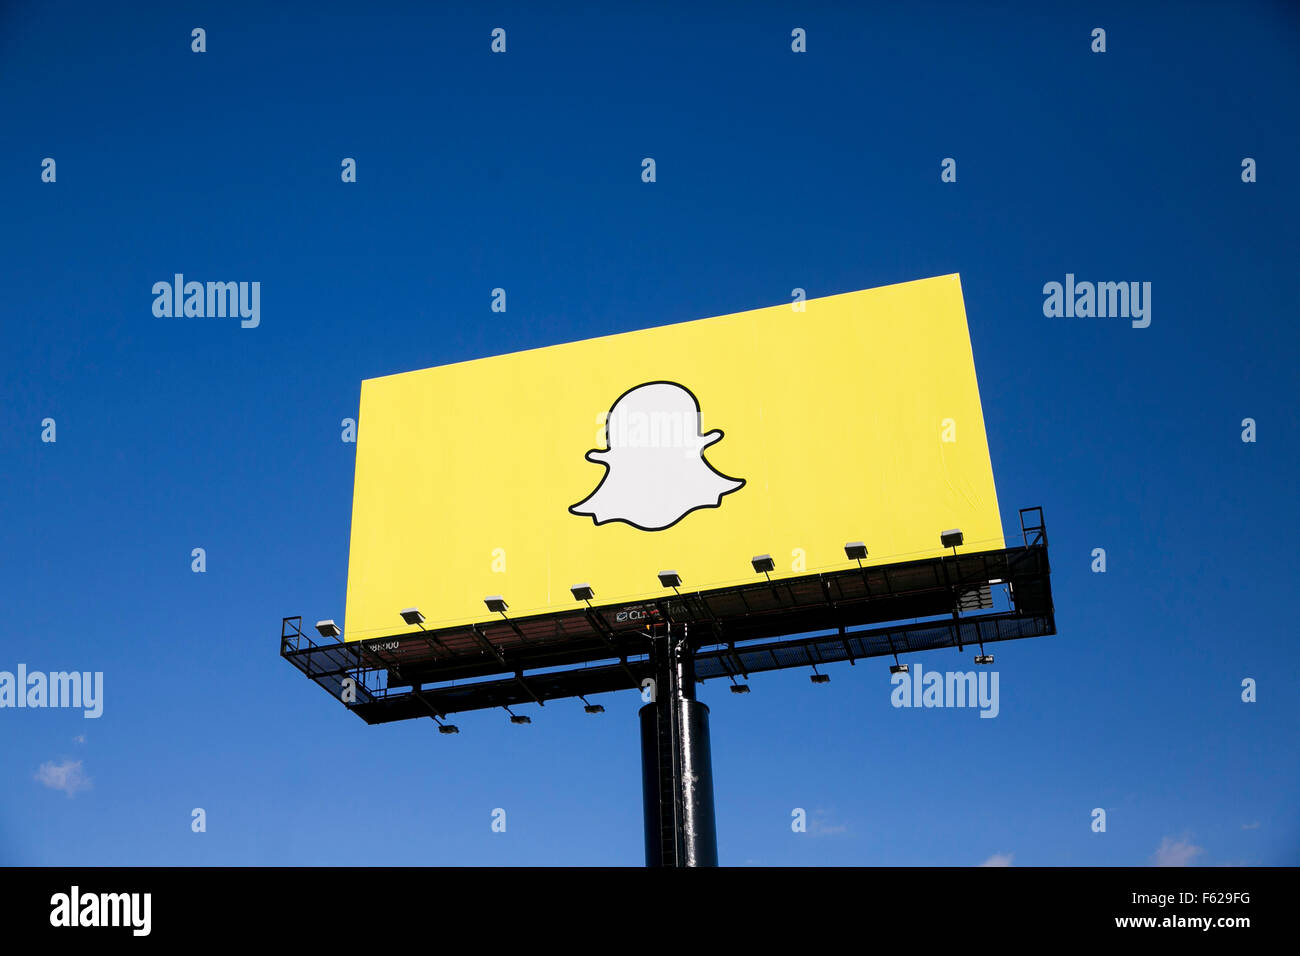 An advertising billboard featuring the Snapchat logo in Richfield, Minnesota on October 24, 2015. - Stock Image